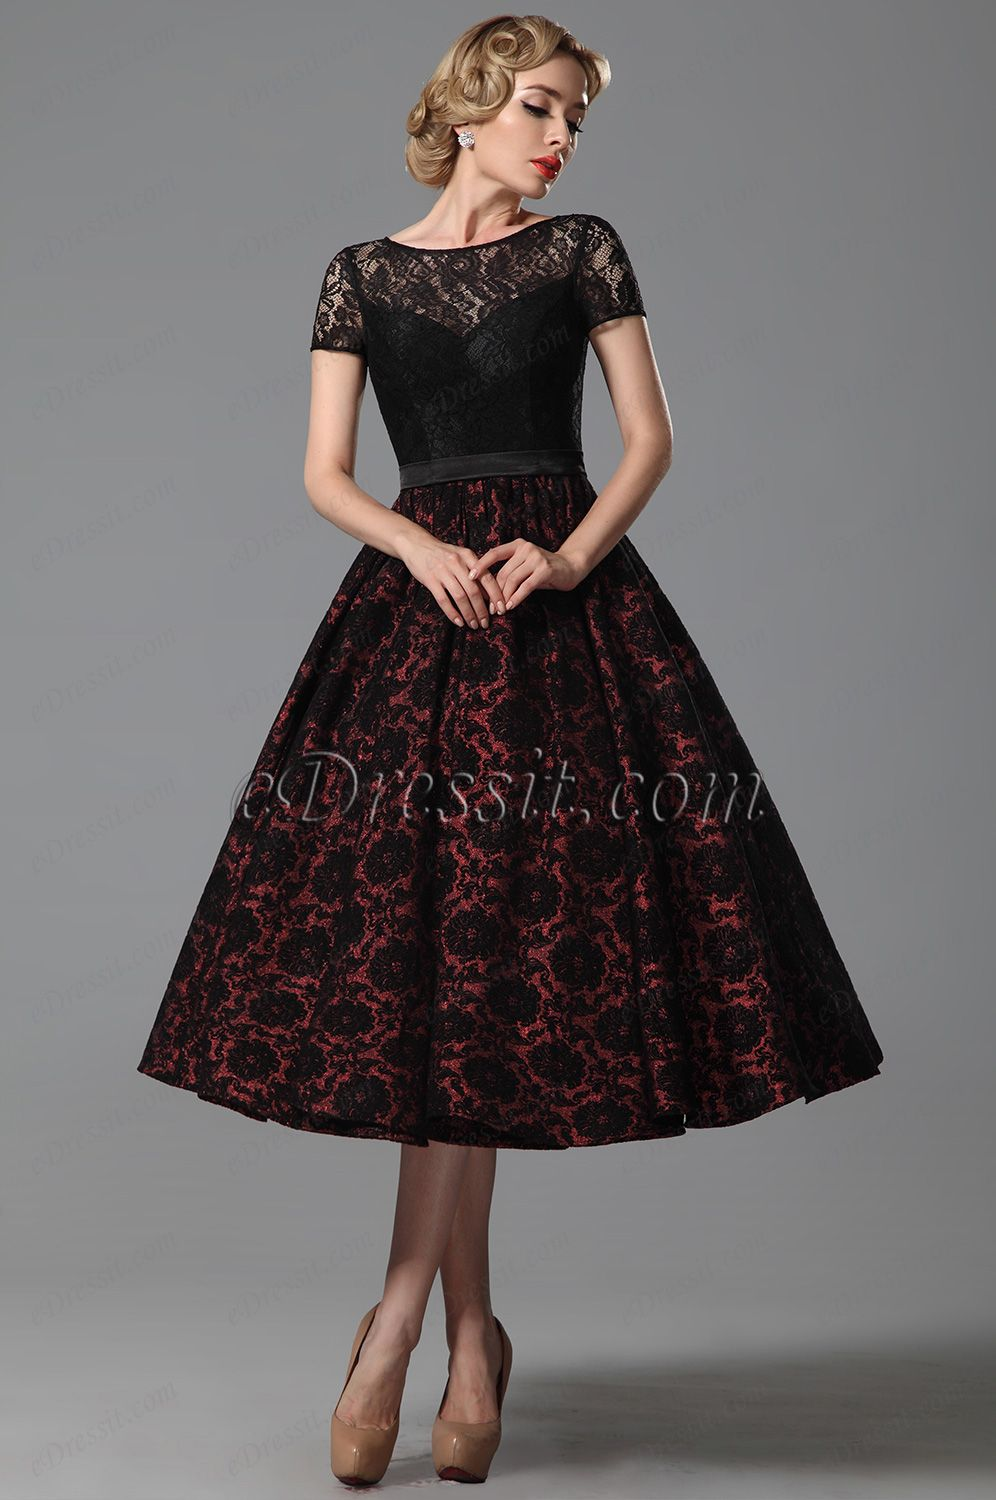 Vintage Short Lace Sleeves Tea Length Cocktail Dress Party Dress ...